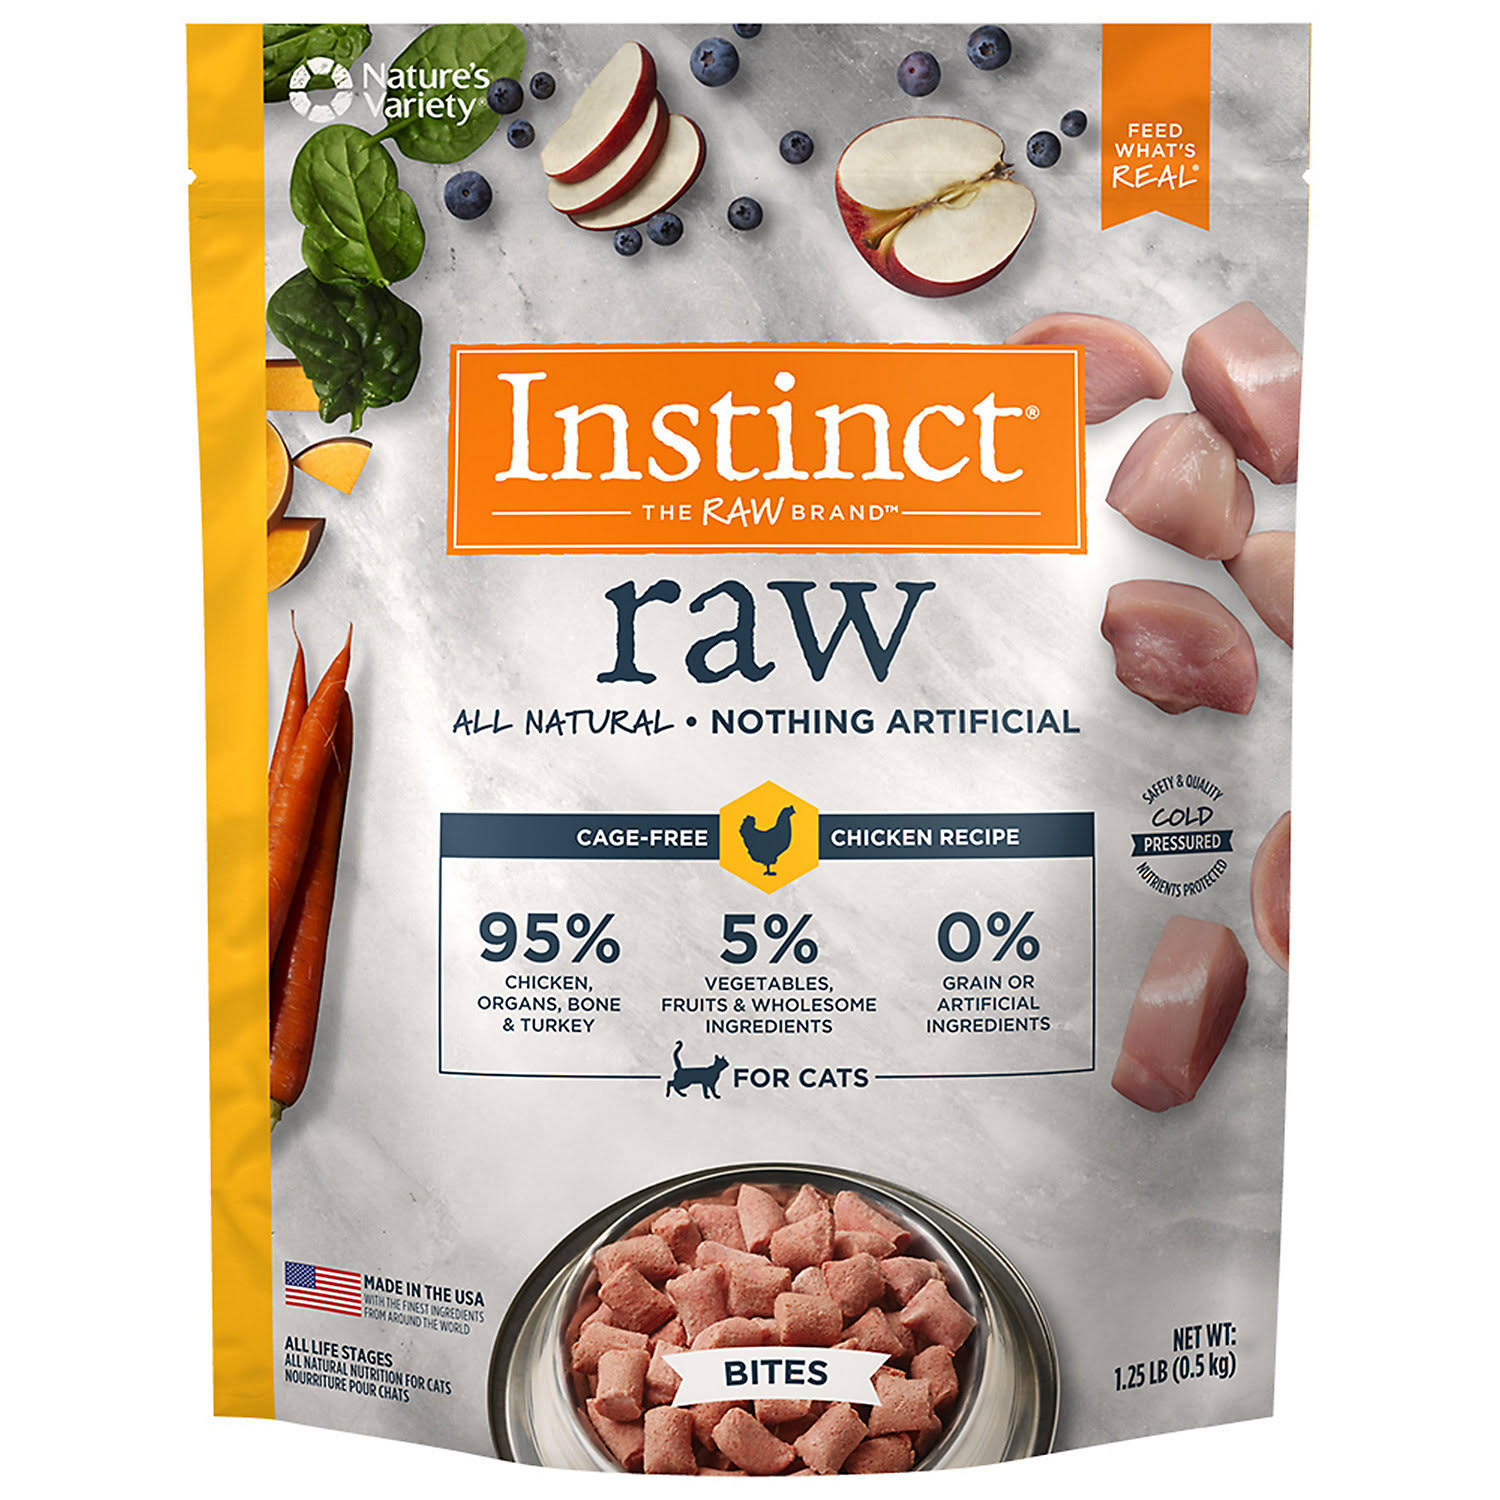 Nature's Variety Instinct Raw Chicken Bites Frozen Cat Food - 1.25 lb bag